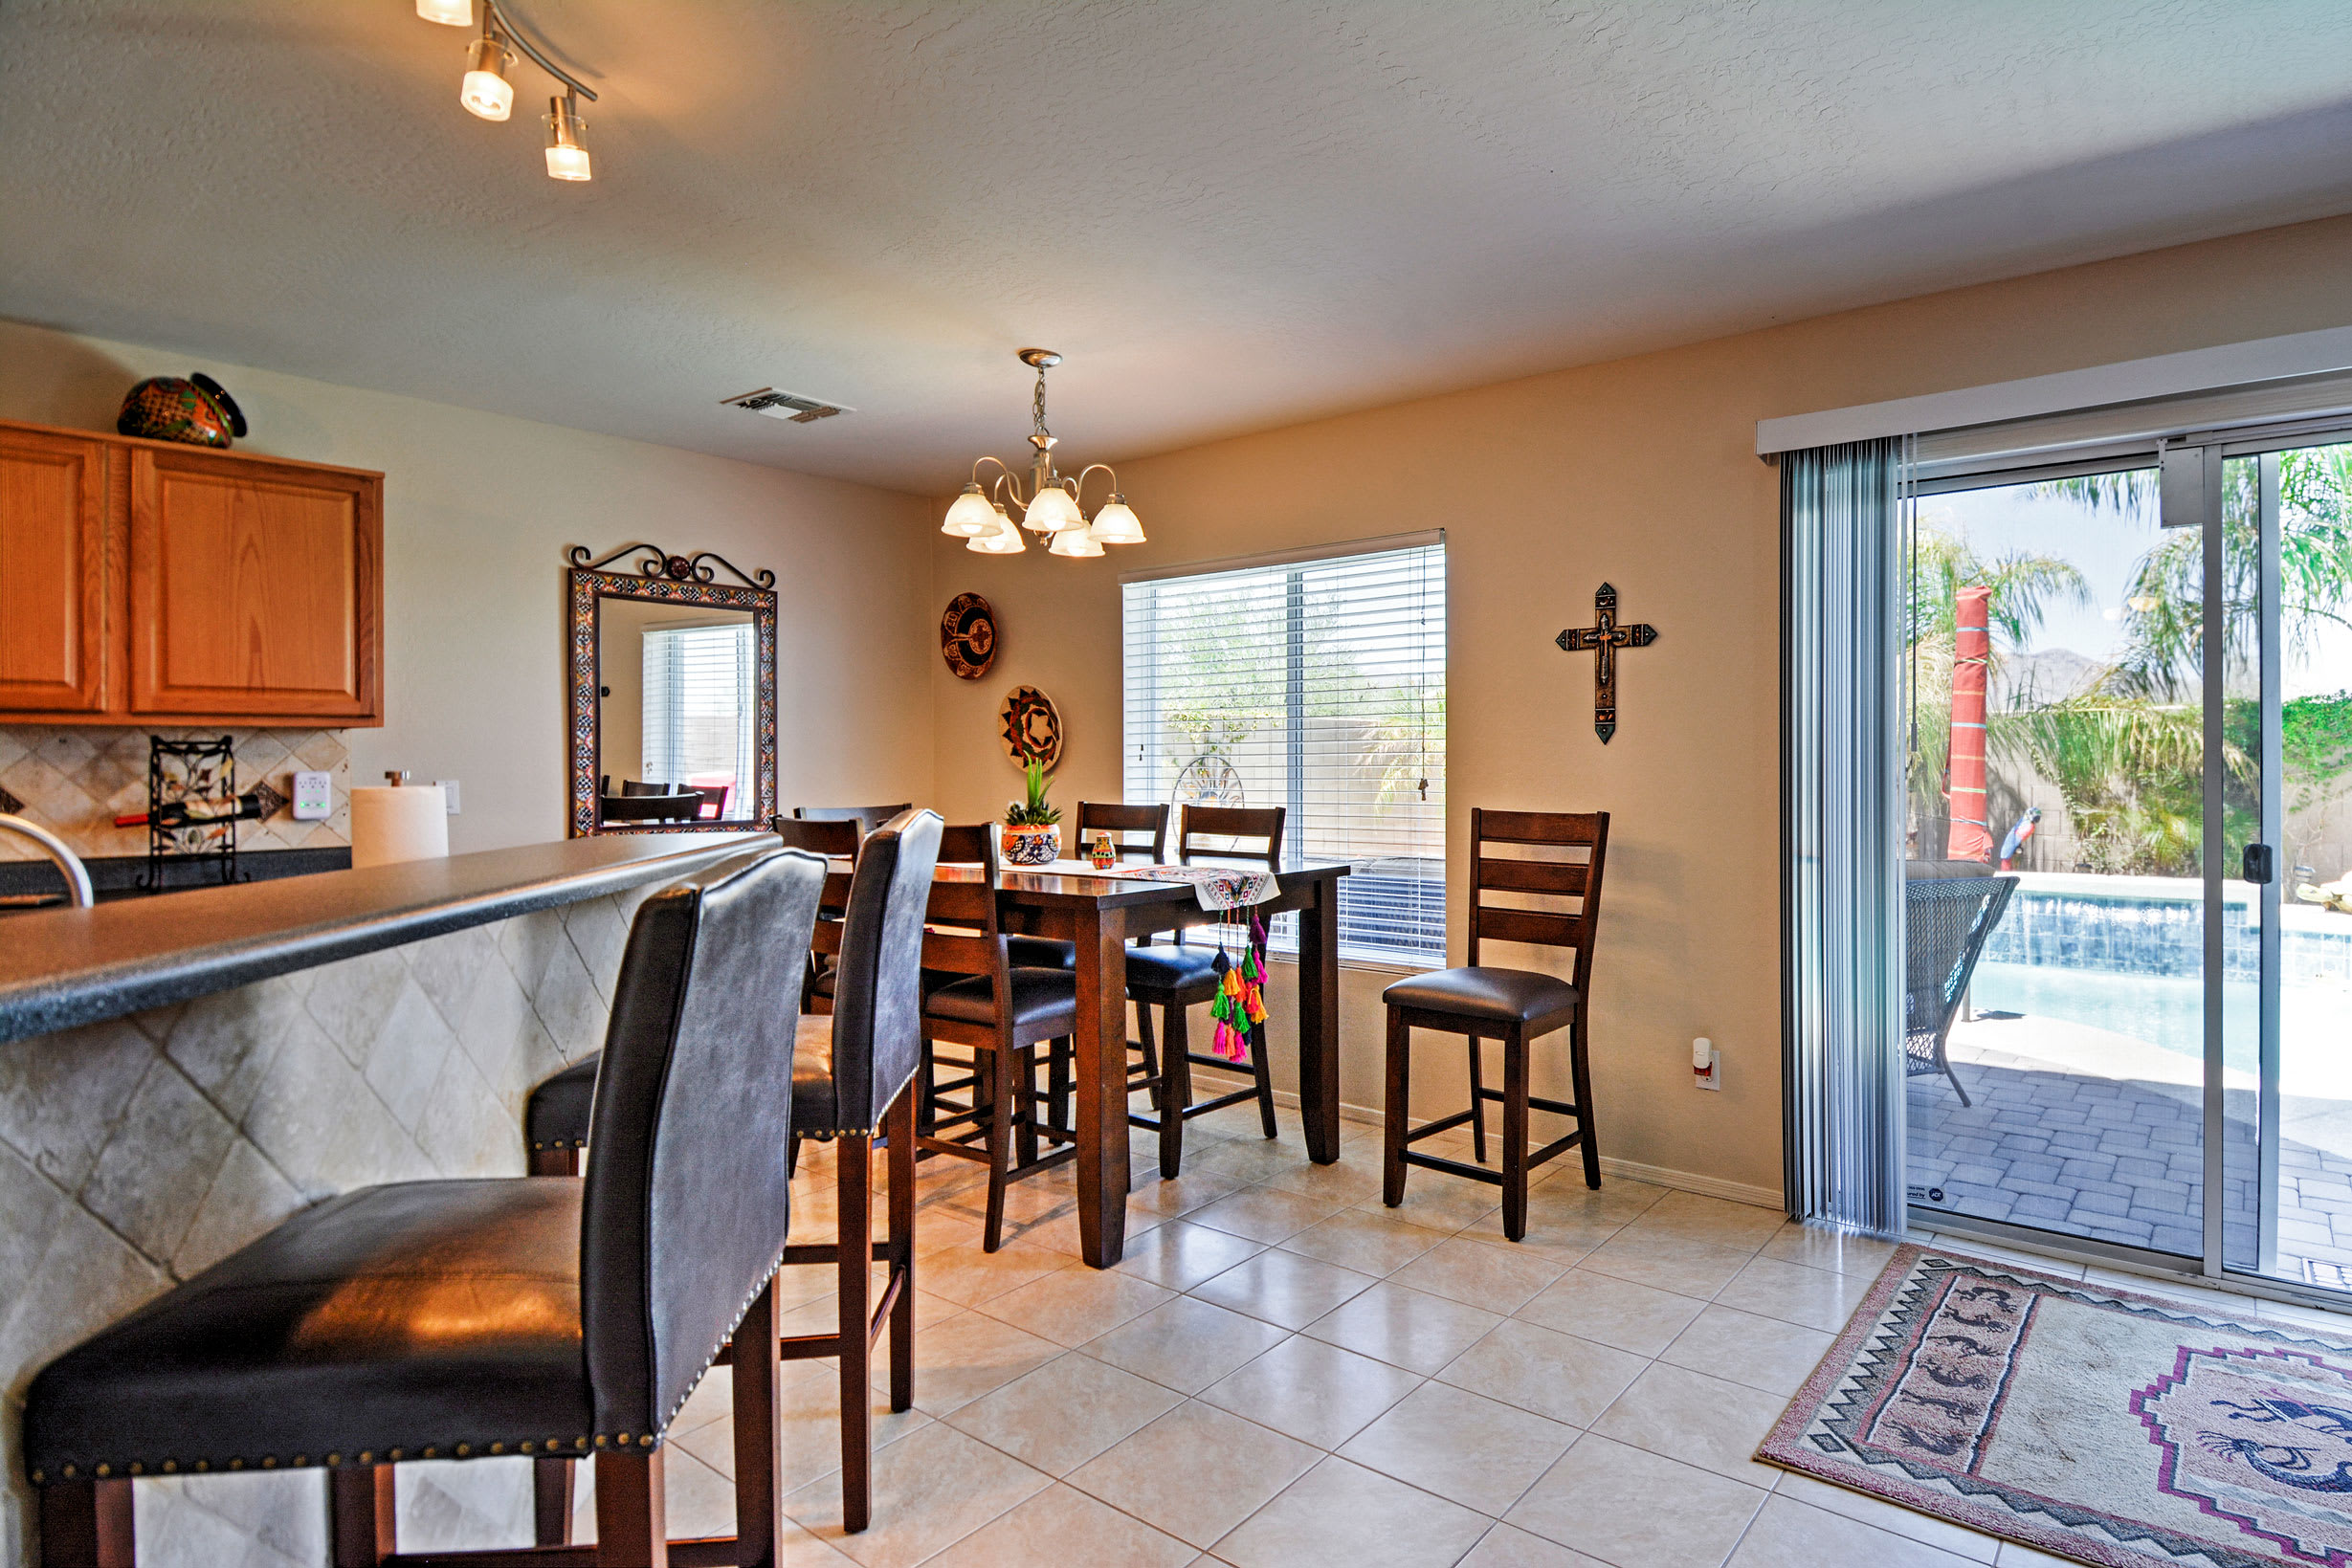 Stay connected at the breakfast bar or enjoy a family meal at the dining table.